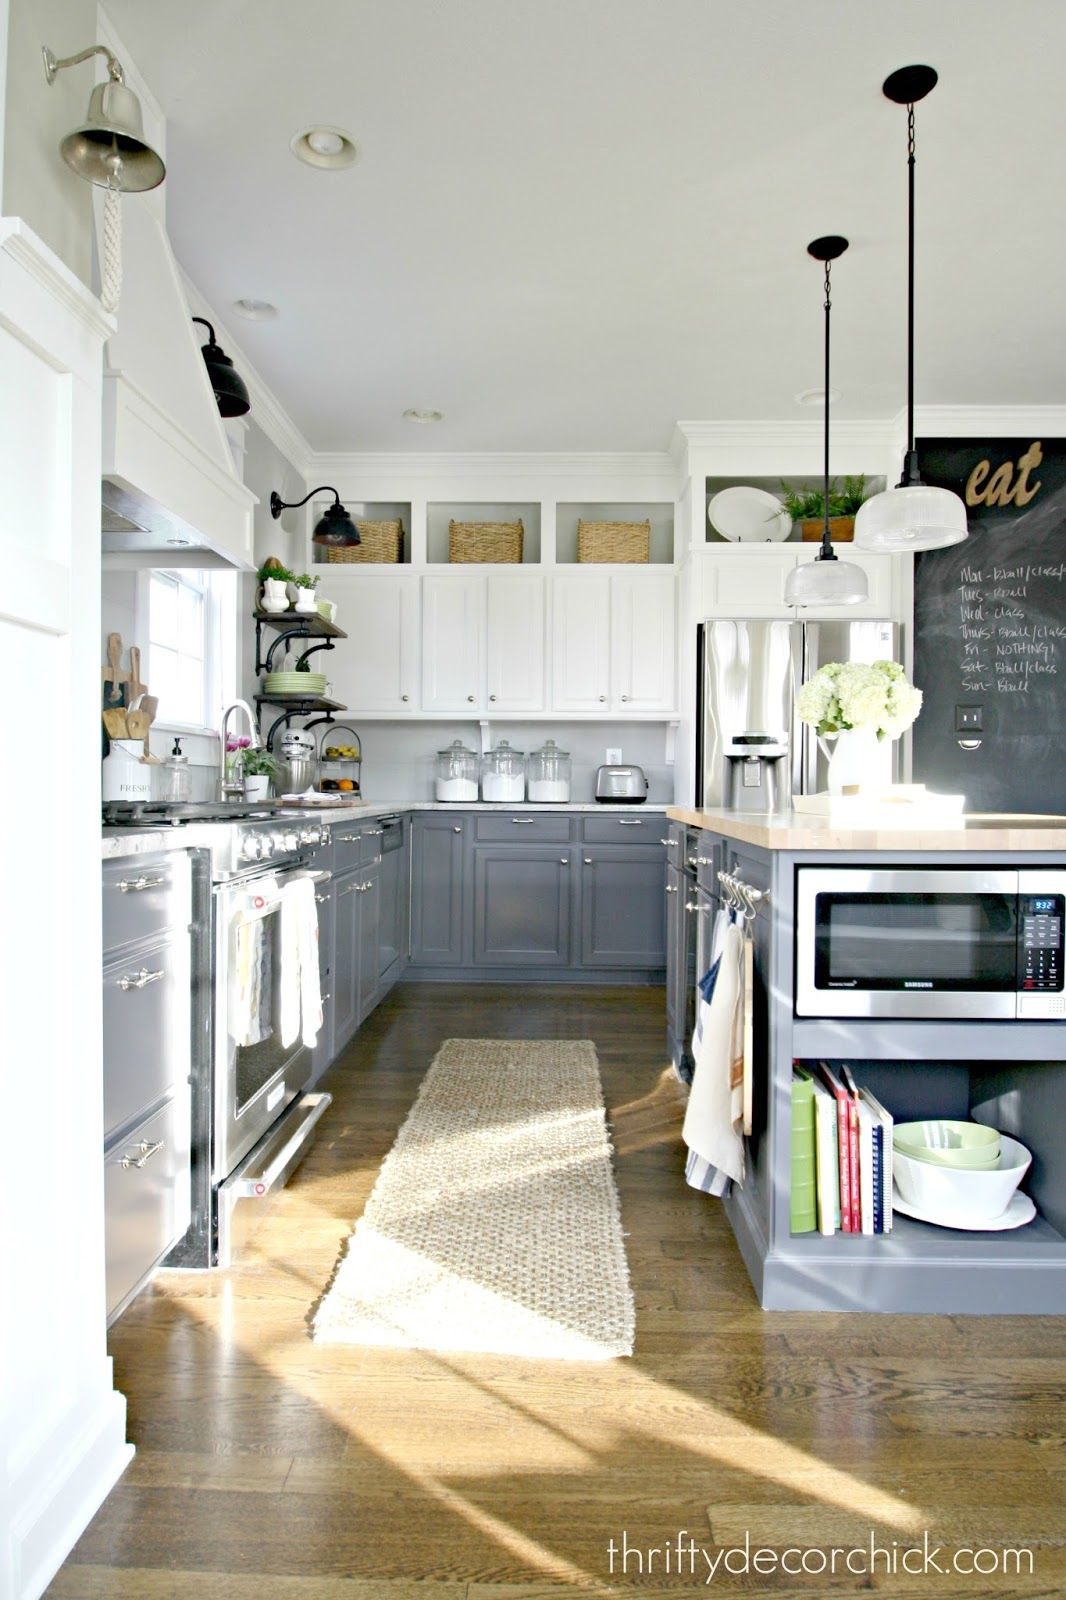 Thrifty decor chick painted kitchen cabinets i like this blogs tutorials and paint choices